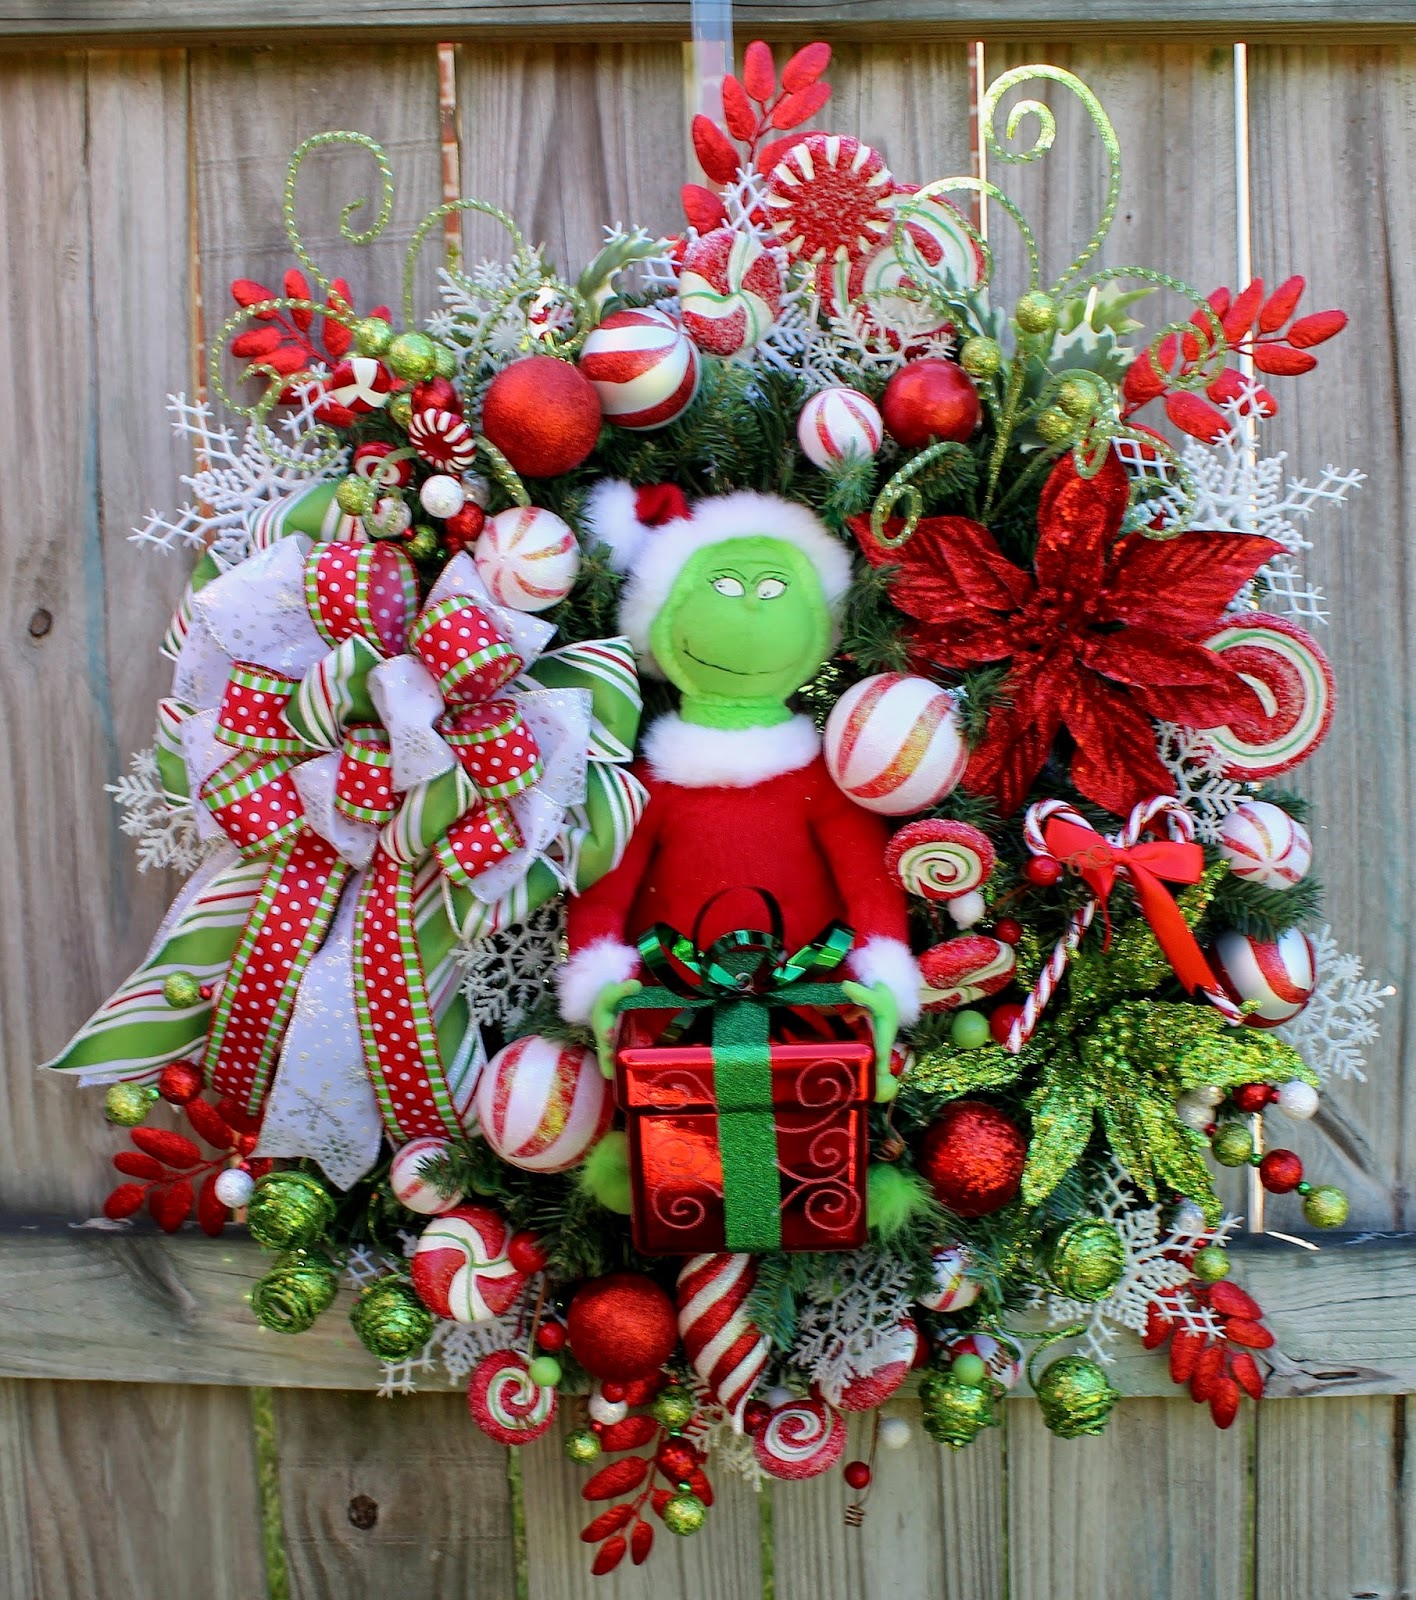 Custom Grinch 2014 Christmas Wreath